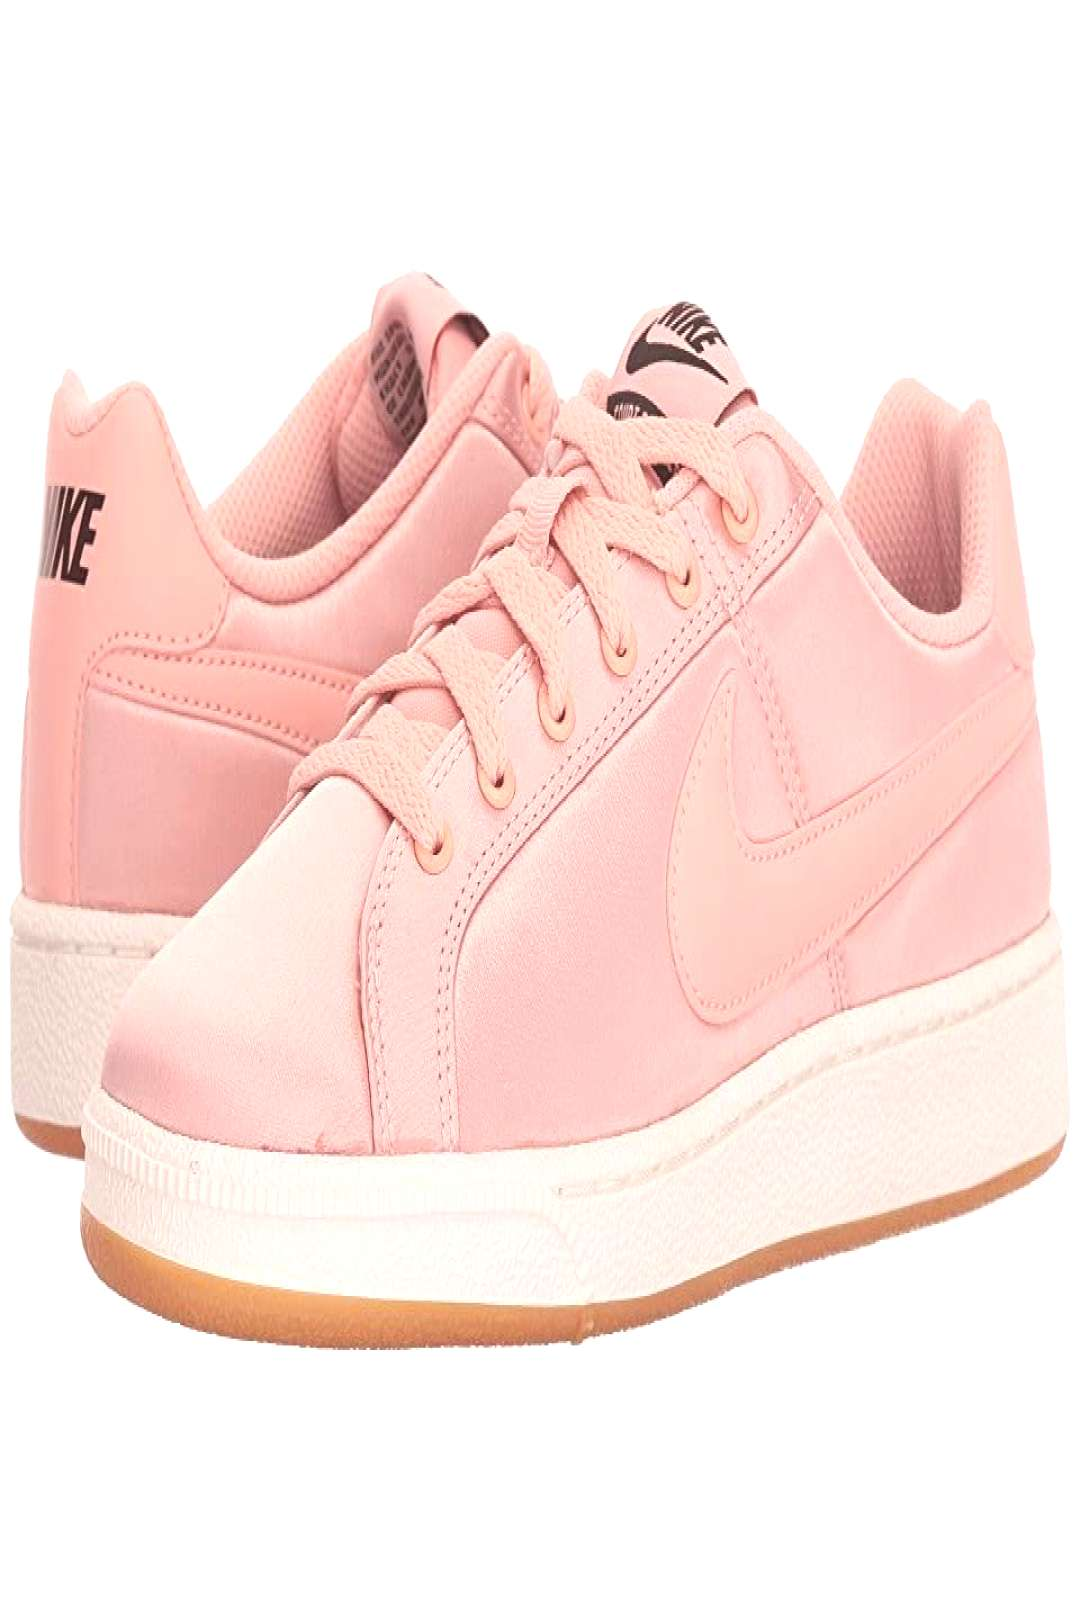 Nike Court Royale Satin (Coral Stardust/Coral Stardust/Sail) Womens Shoes. Show us how fancy you